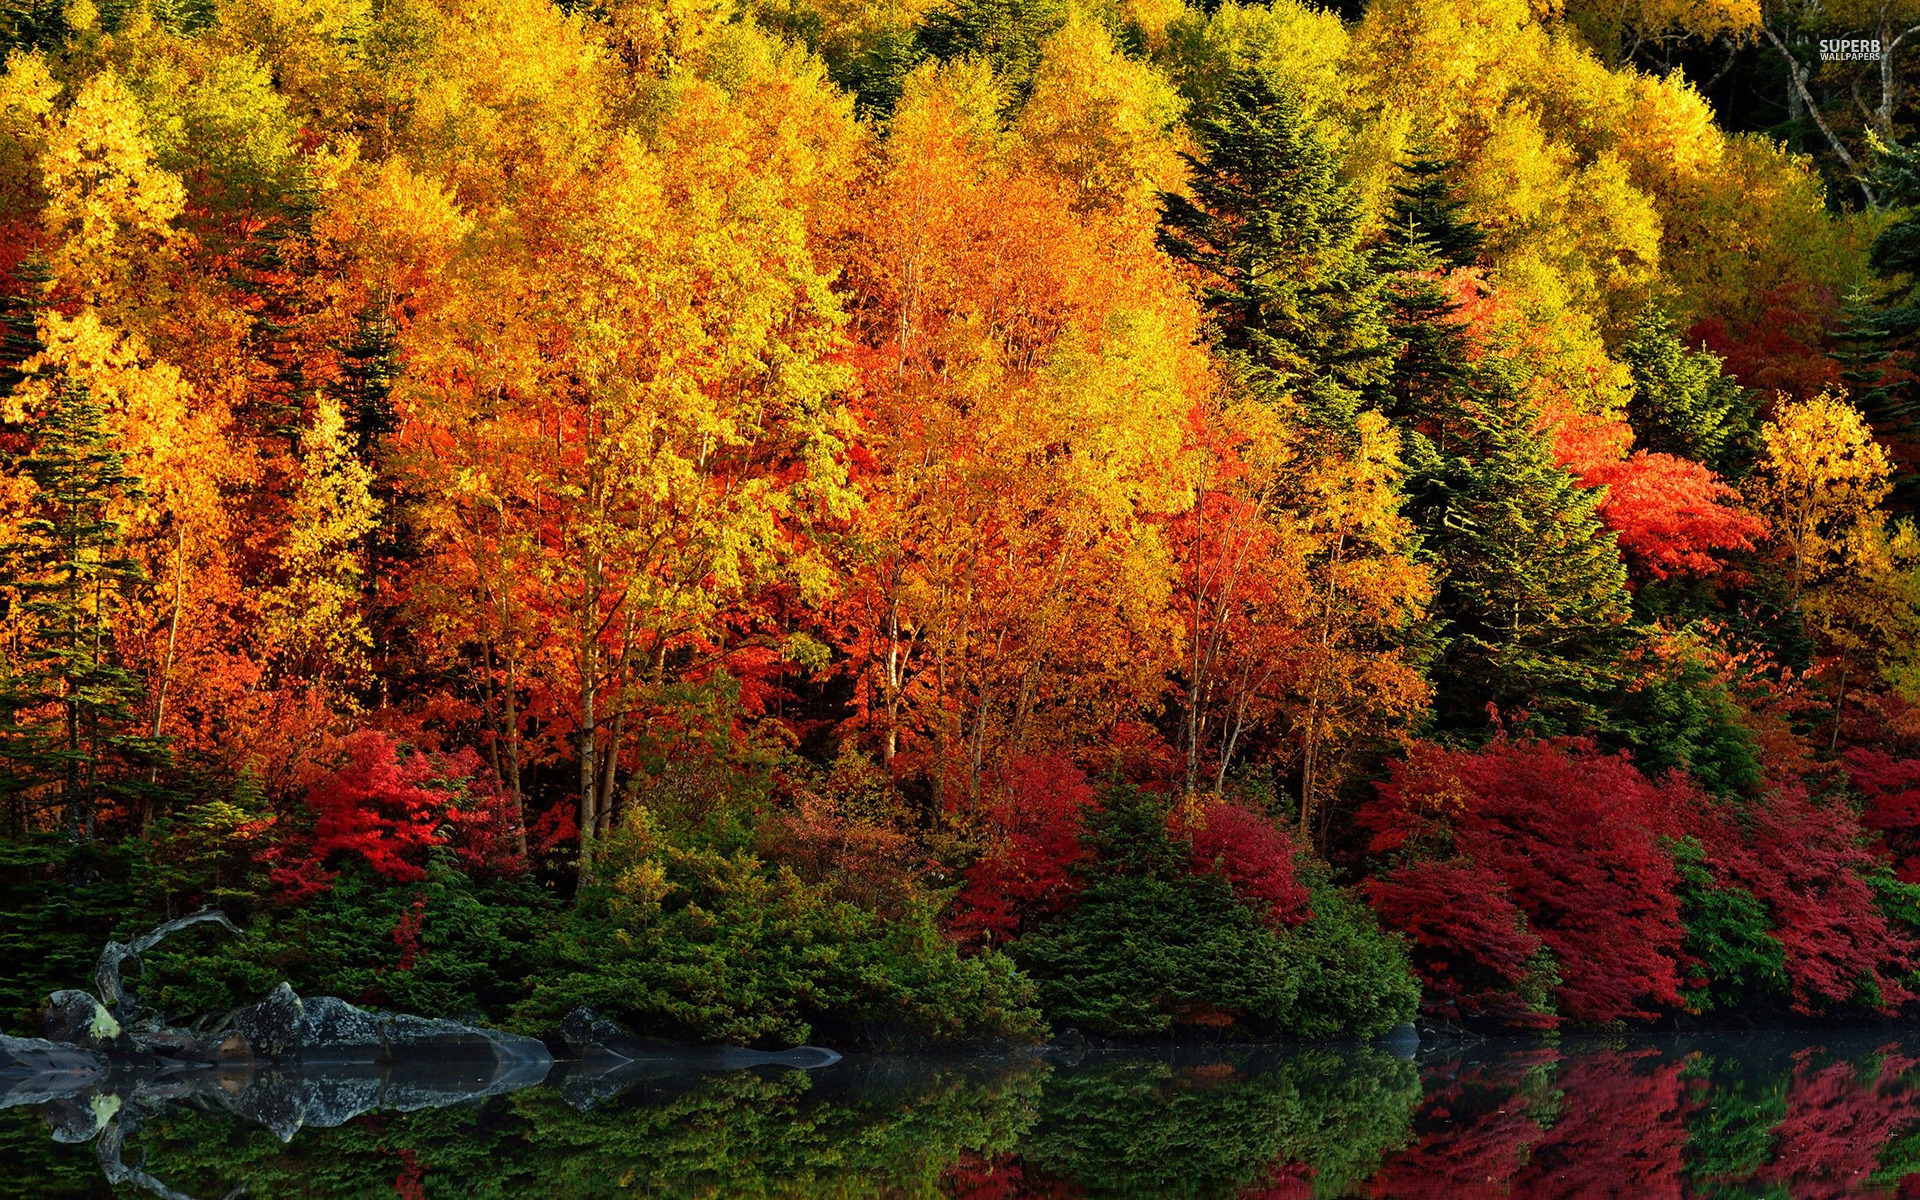 Adorable Autumn Forest & River wallpapers | Adorable ...